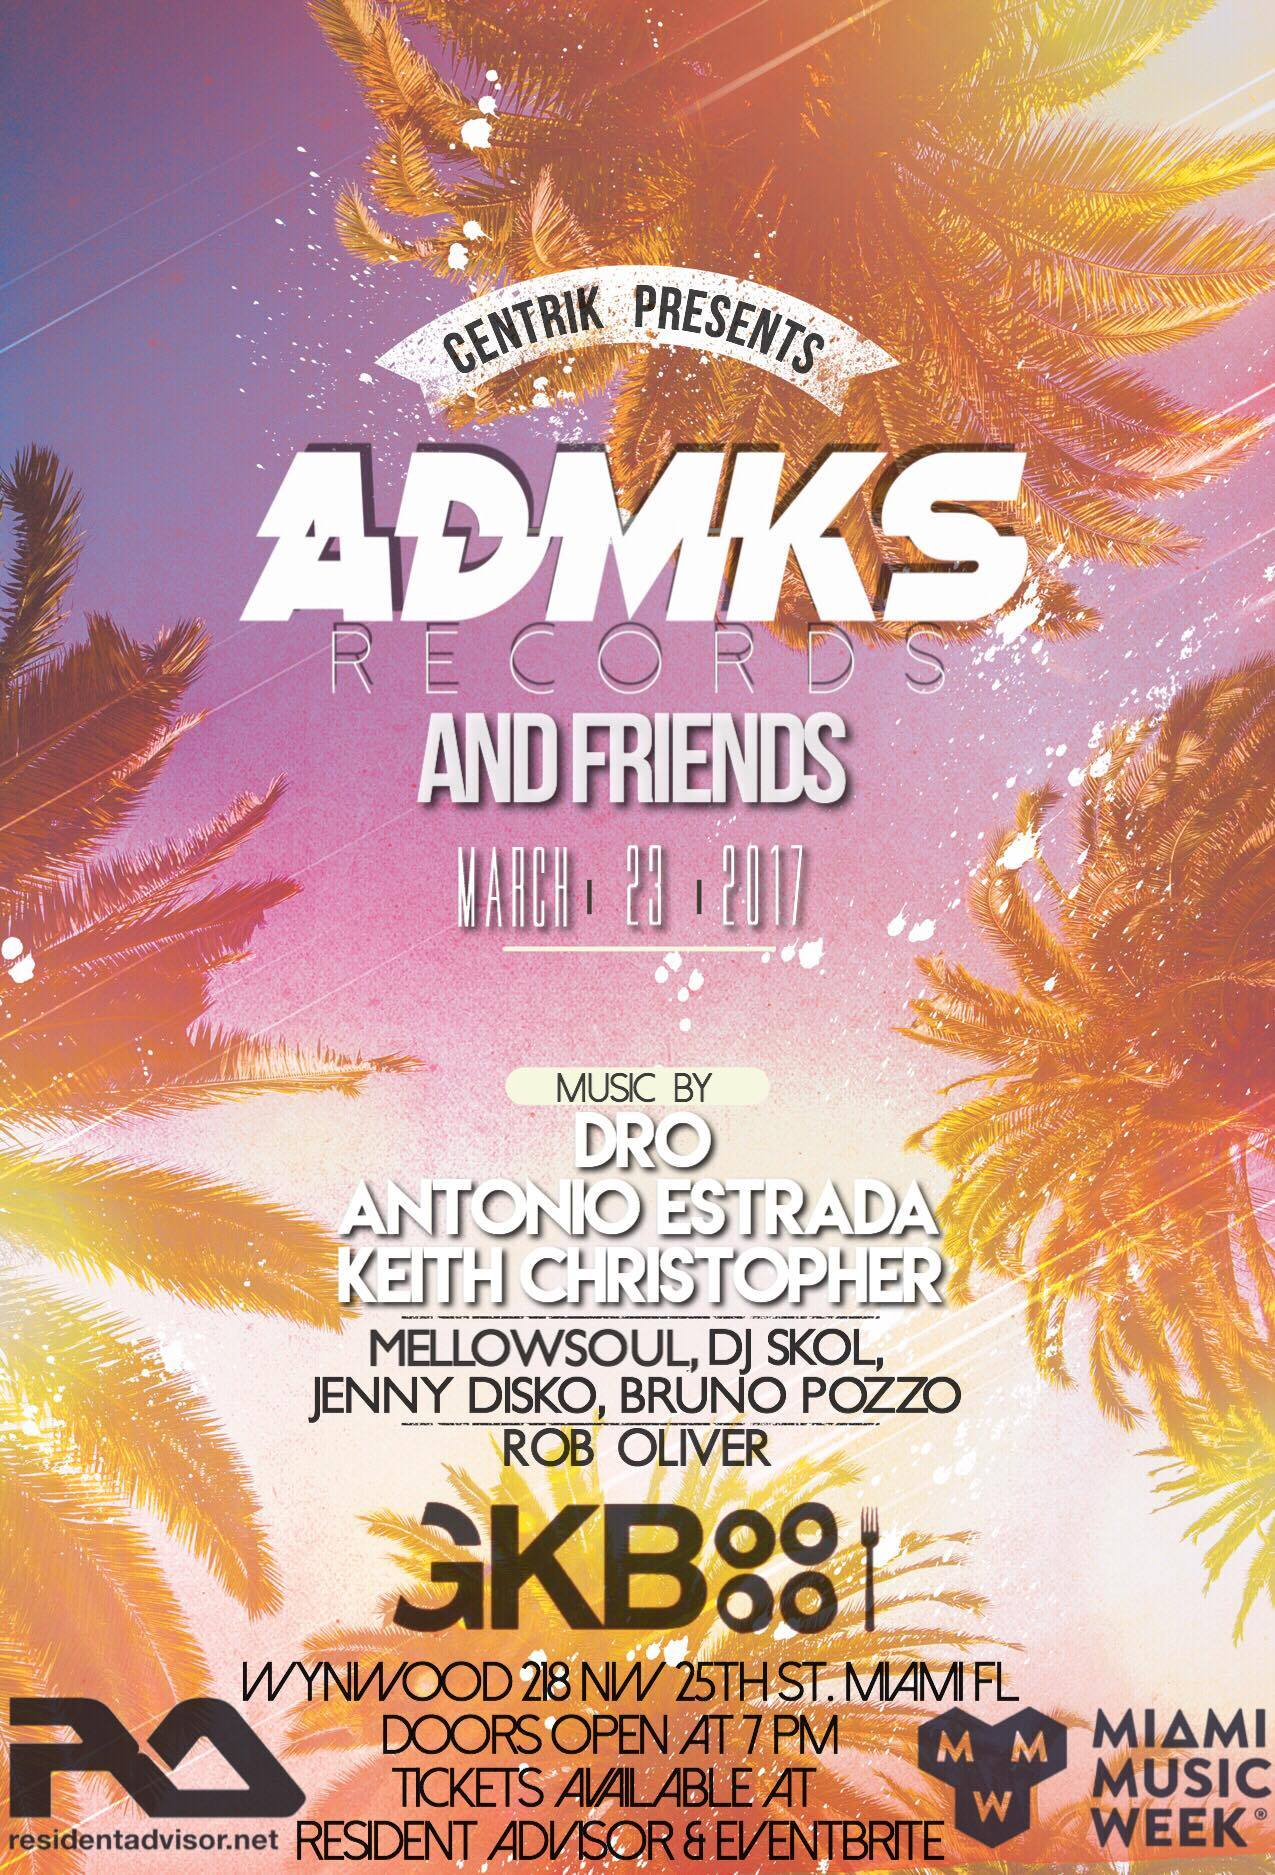 ADMKS Records and Friends Label Miami Music Week Party